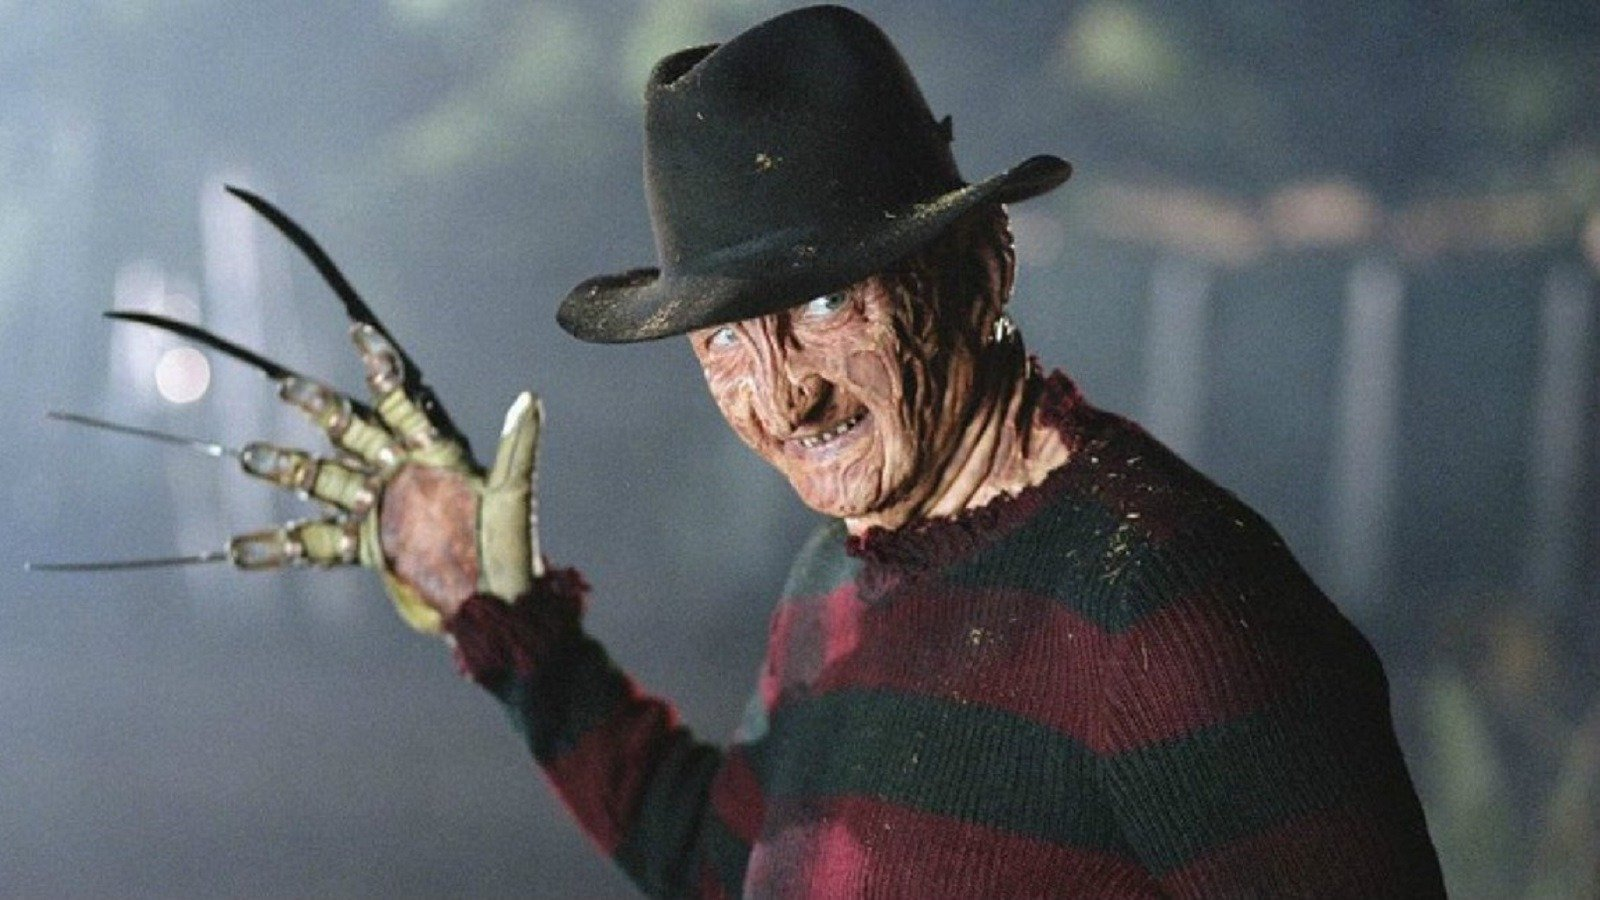 A Nightmare On Elm Street 3: Dream Warriors' Is The Best In The Series